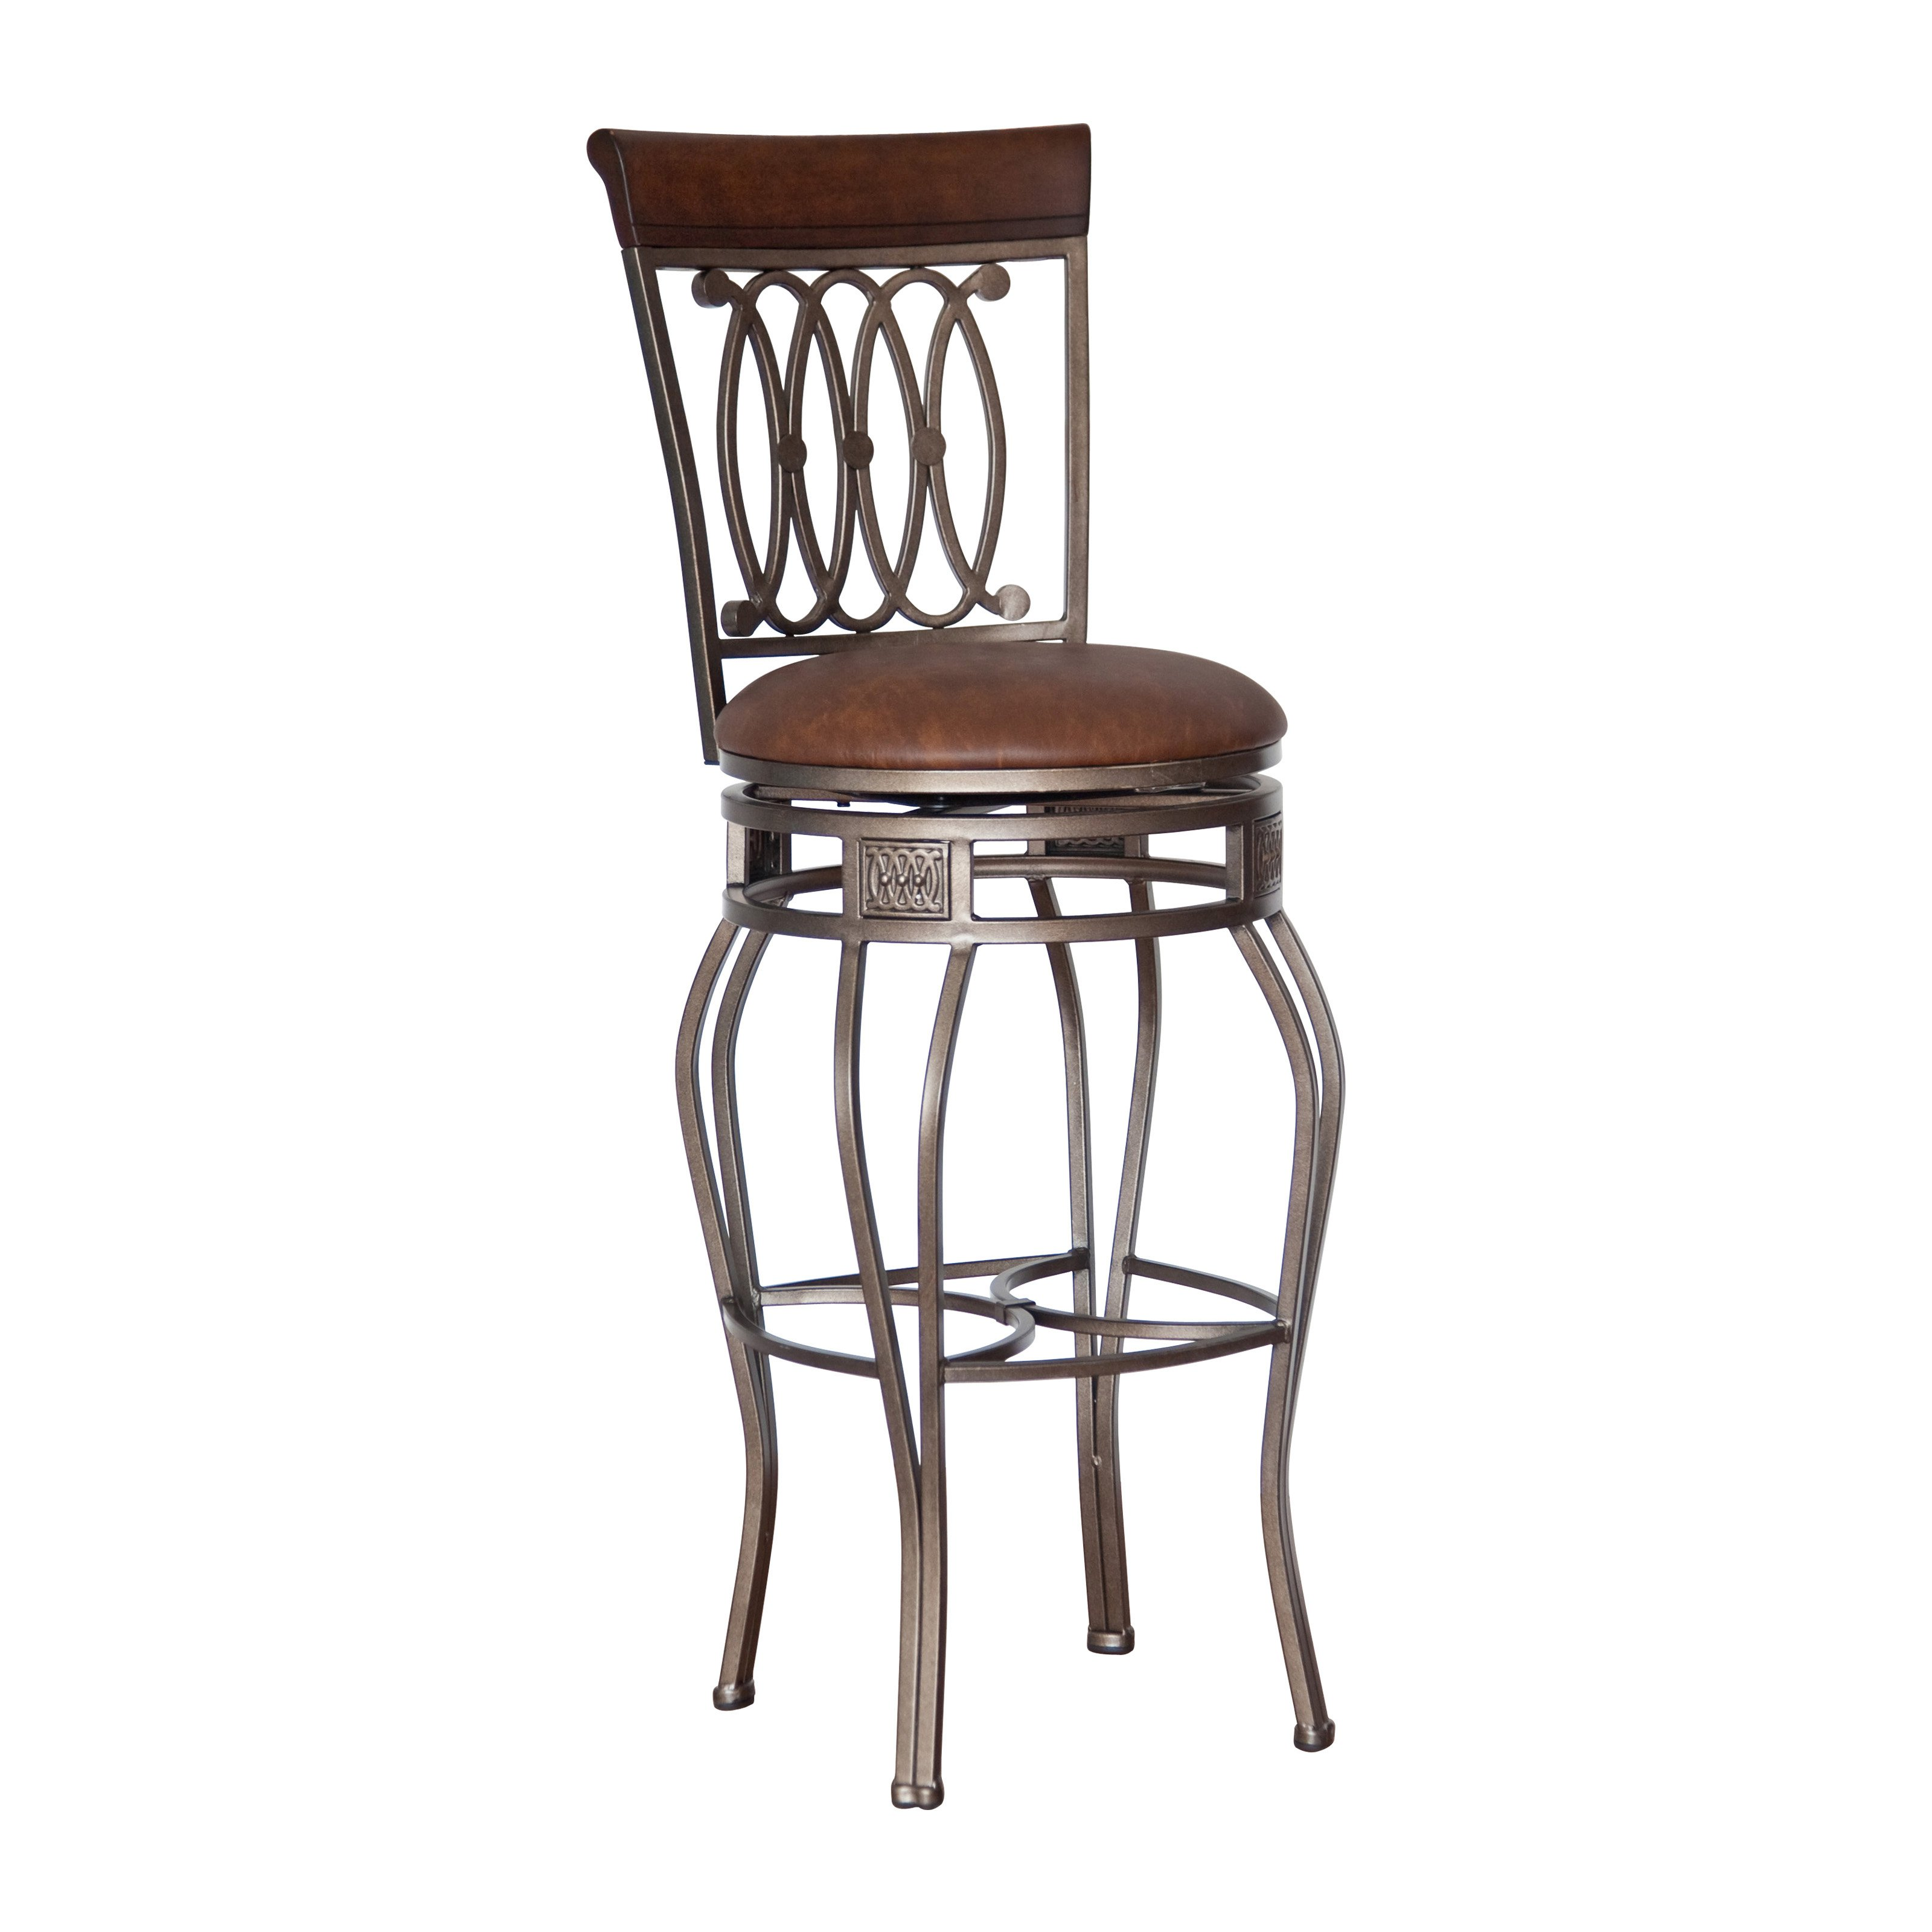 Bar stool chairs with backs - Hillsdale Furniture Montello 48 5 Swivel Bar Stool Old Steel Finish With Brown Faux Leather Walmart Com